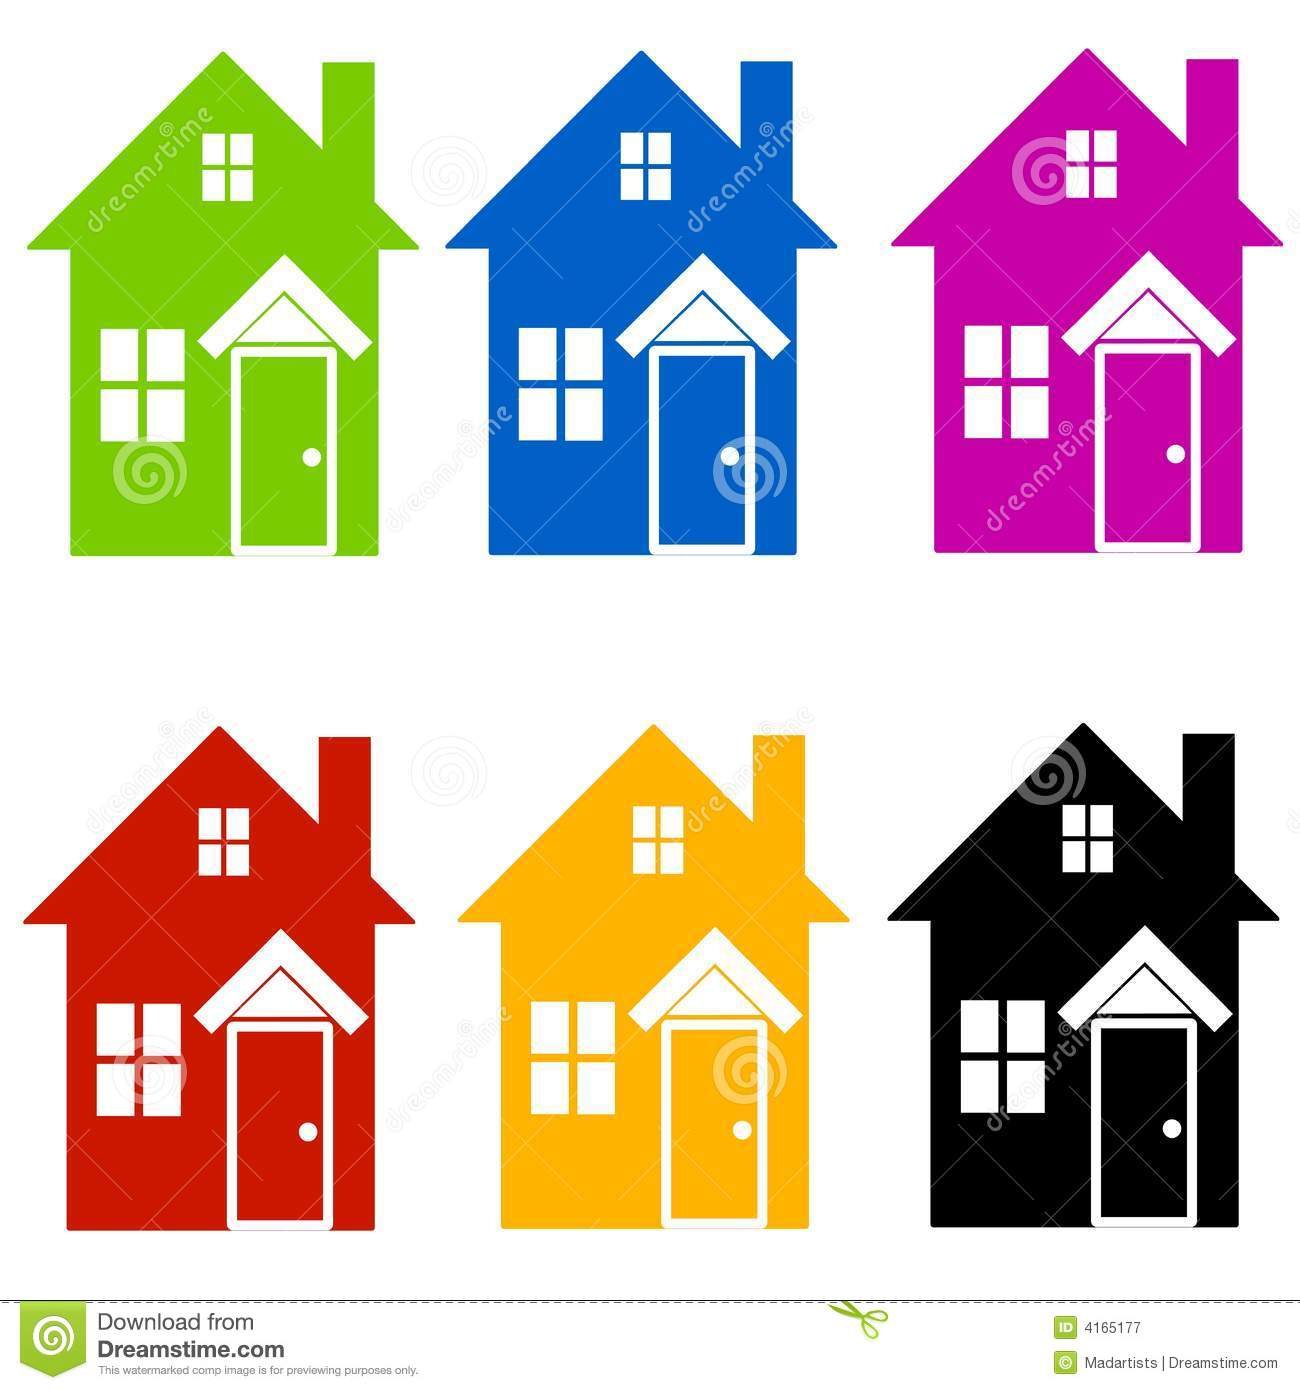 colourful house silhouettes clip art stock illustration rh dreamstime com house clip art free black and white house clipart free